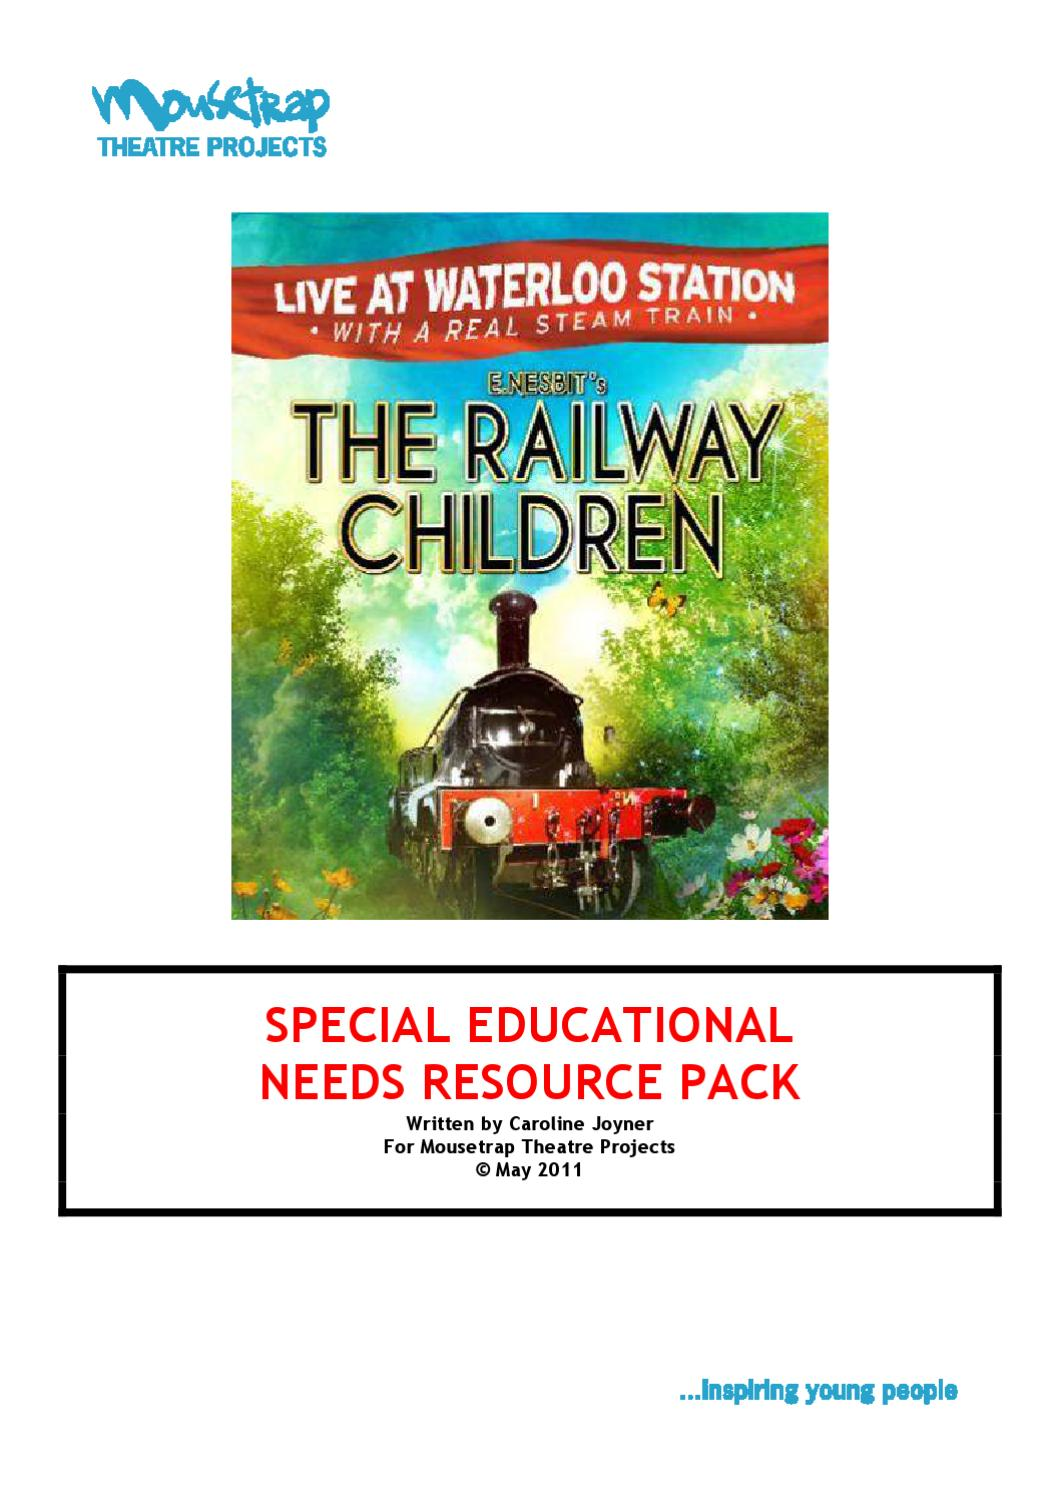 The Railway Children resource pack by Mousetrap Theatre Projects ...